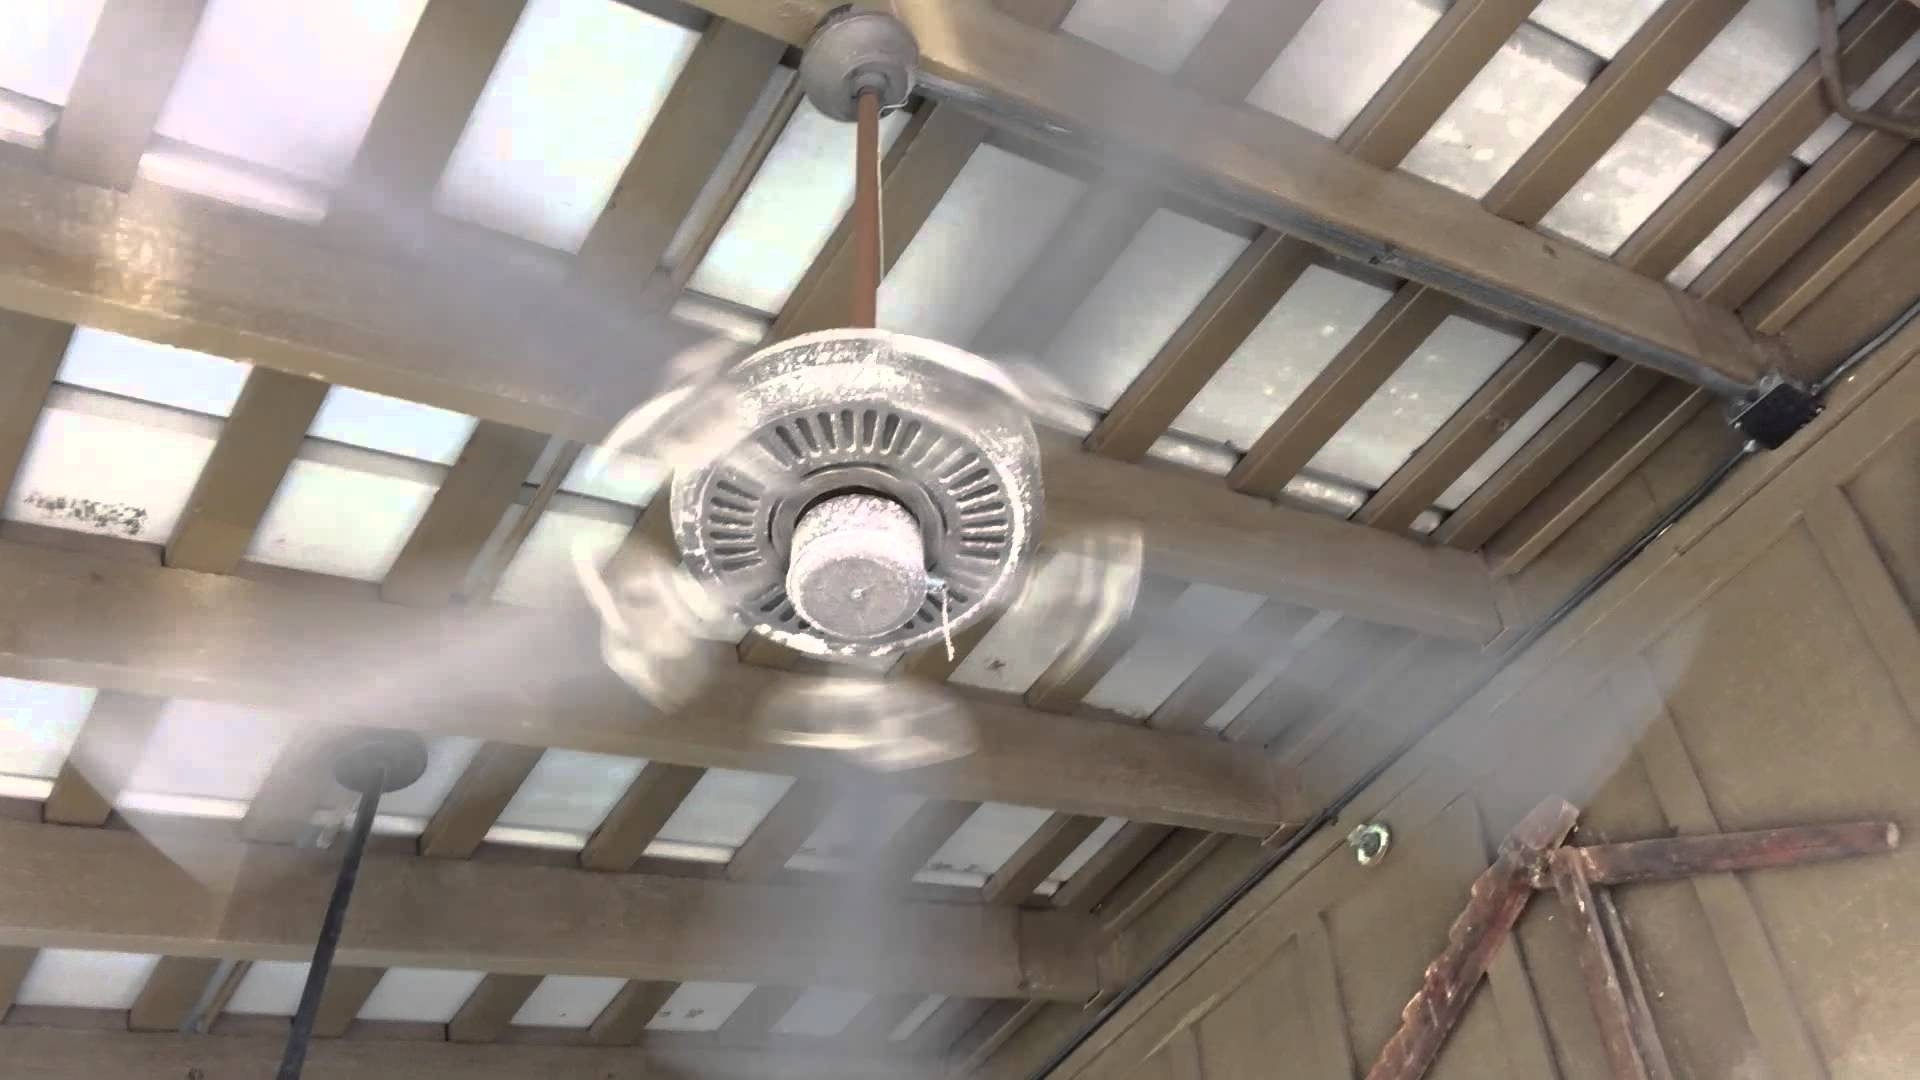 "52"" Craftmade Cxl & Outdoor Patio Ceiling Fans In A Cracker Barrel Inside Trendy Outdoor Ceiling Fans With Misters (Gallery 4 of 20)"